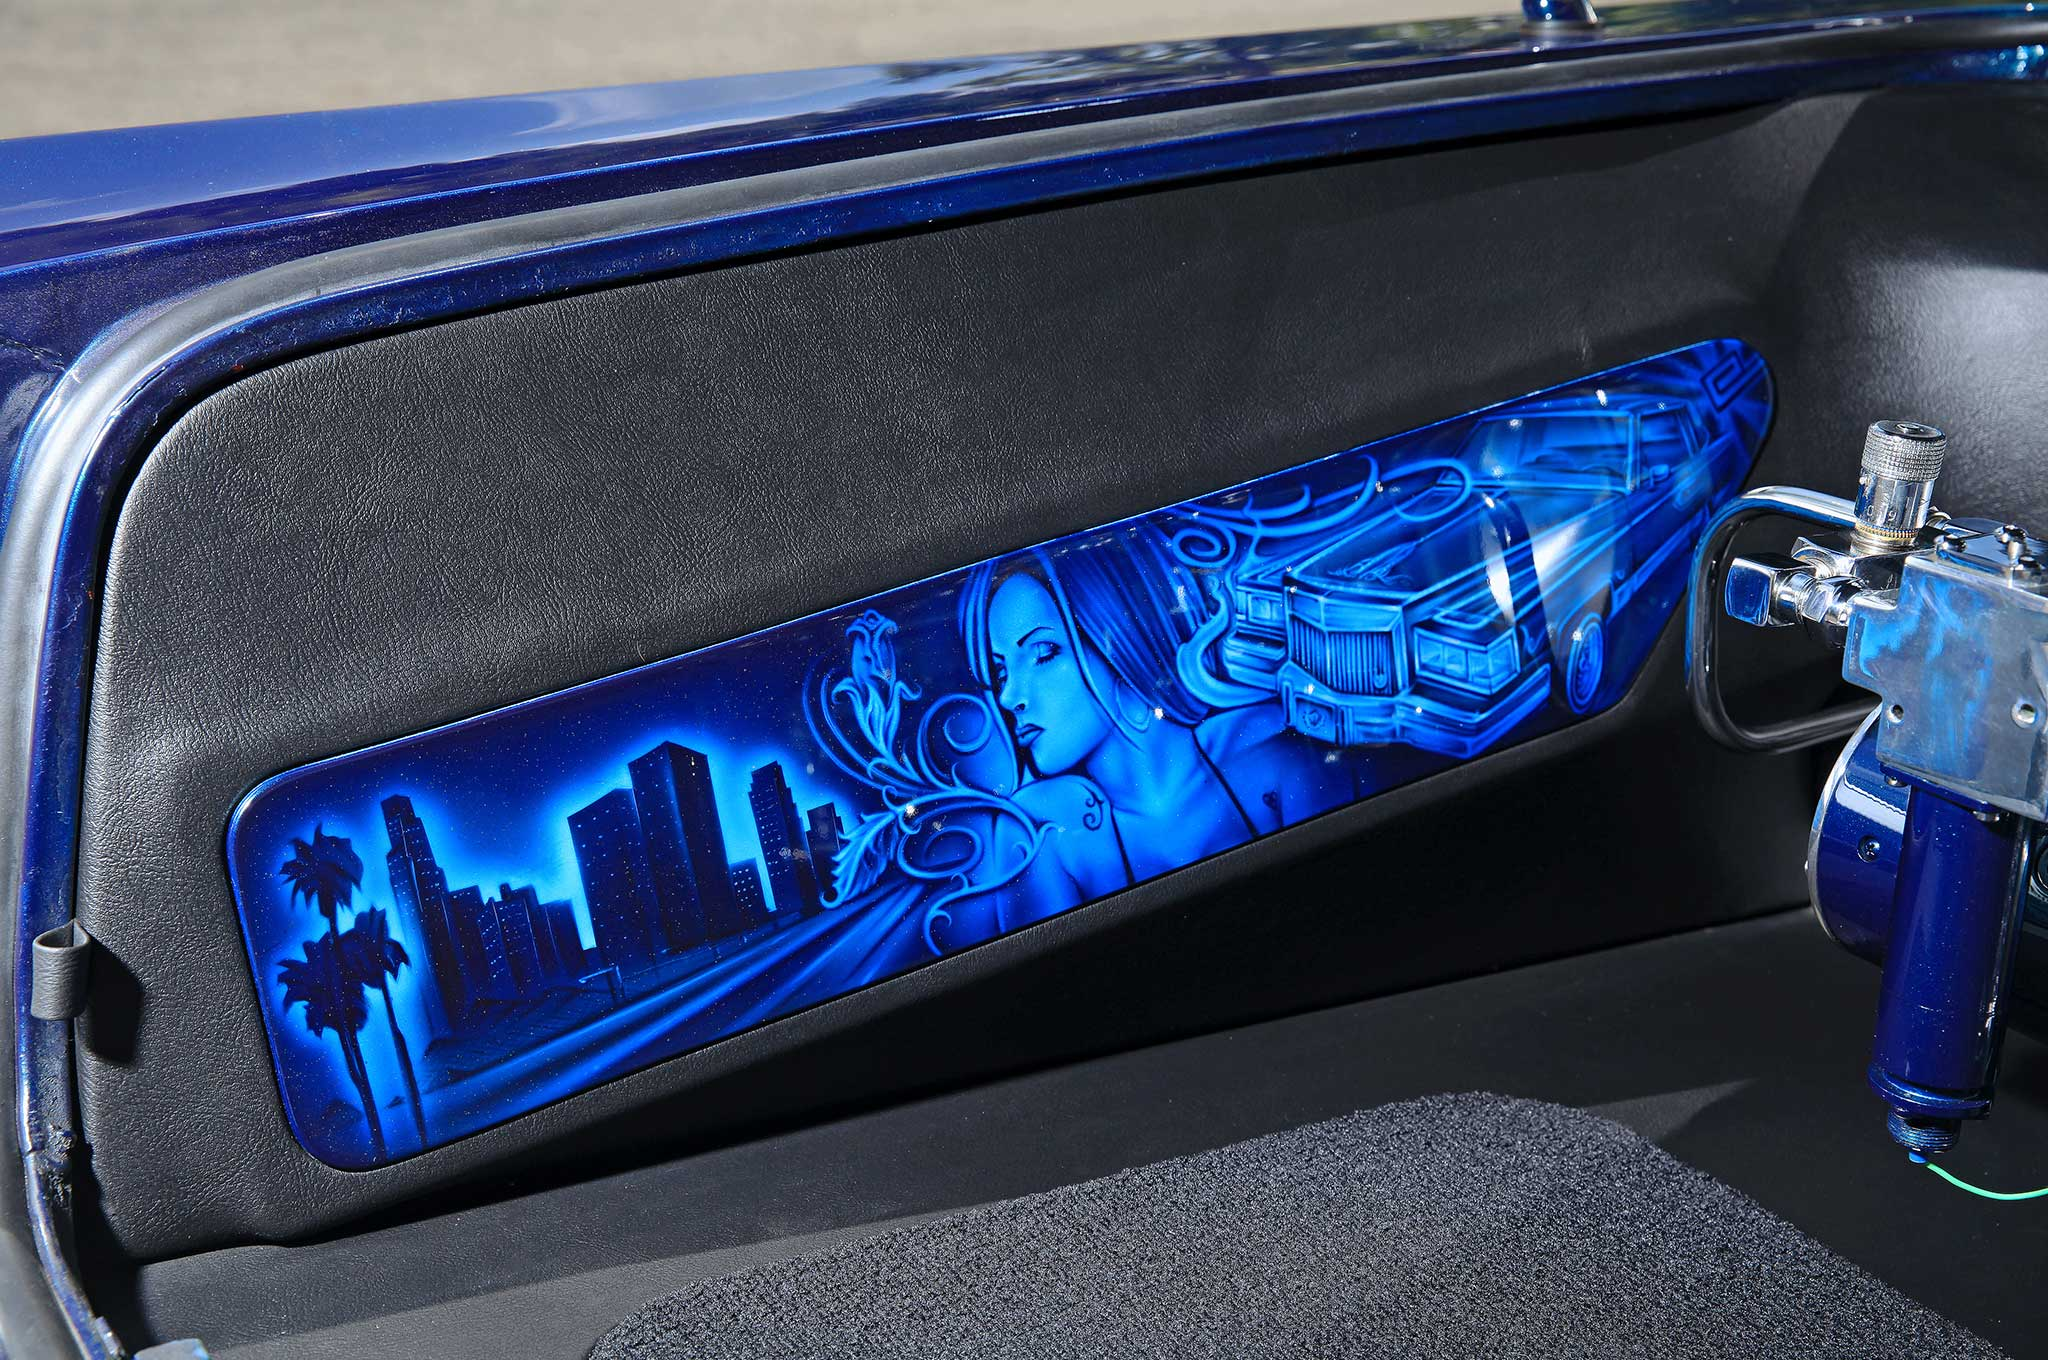 Lowrider airbrush art on cars images for Airbrush mural painting